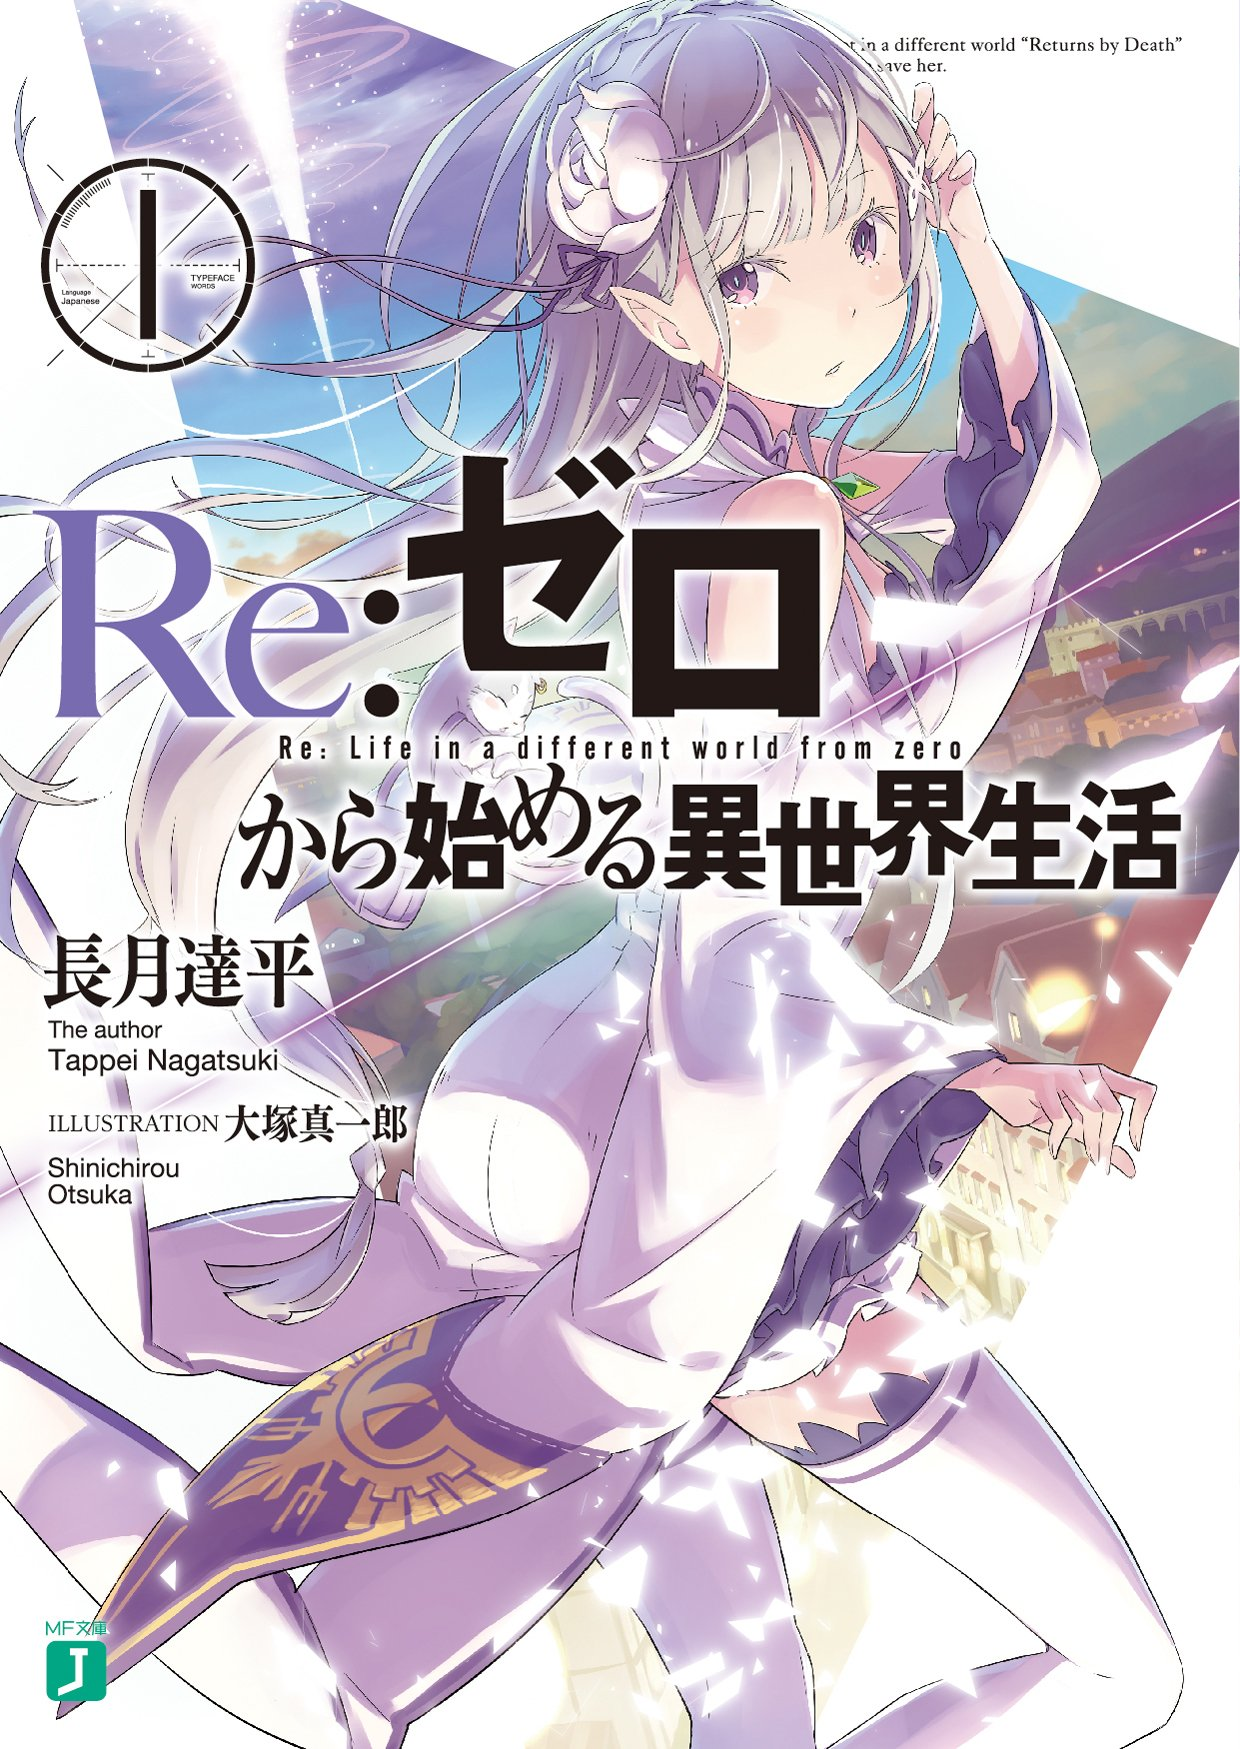 Light Novel Review: Re:Zero kara Hajimeru Isekai Seikatsu Volume 1